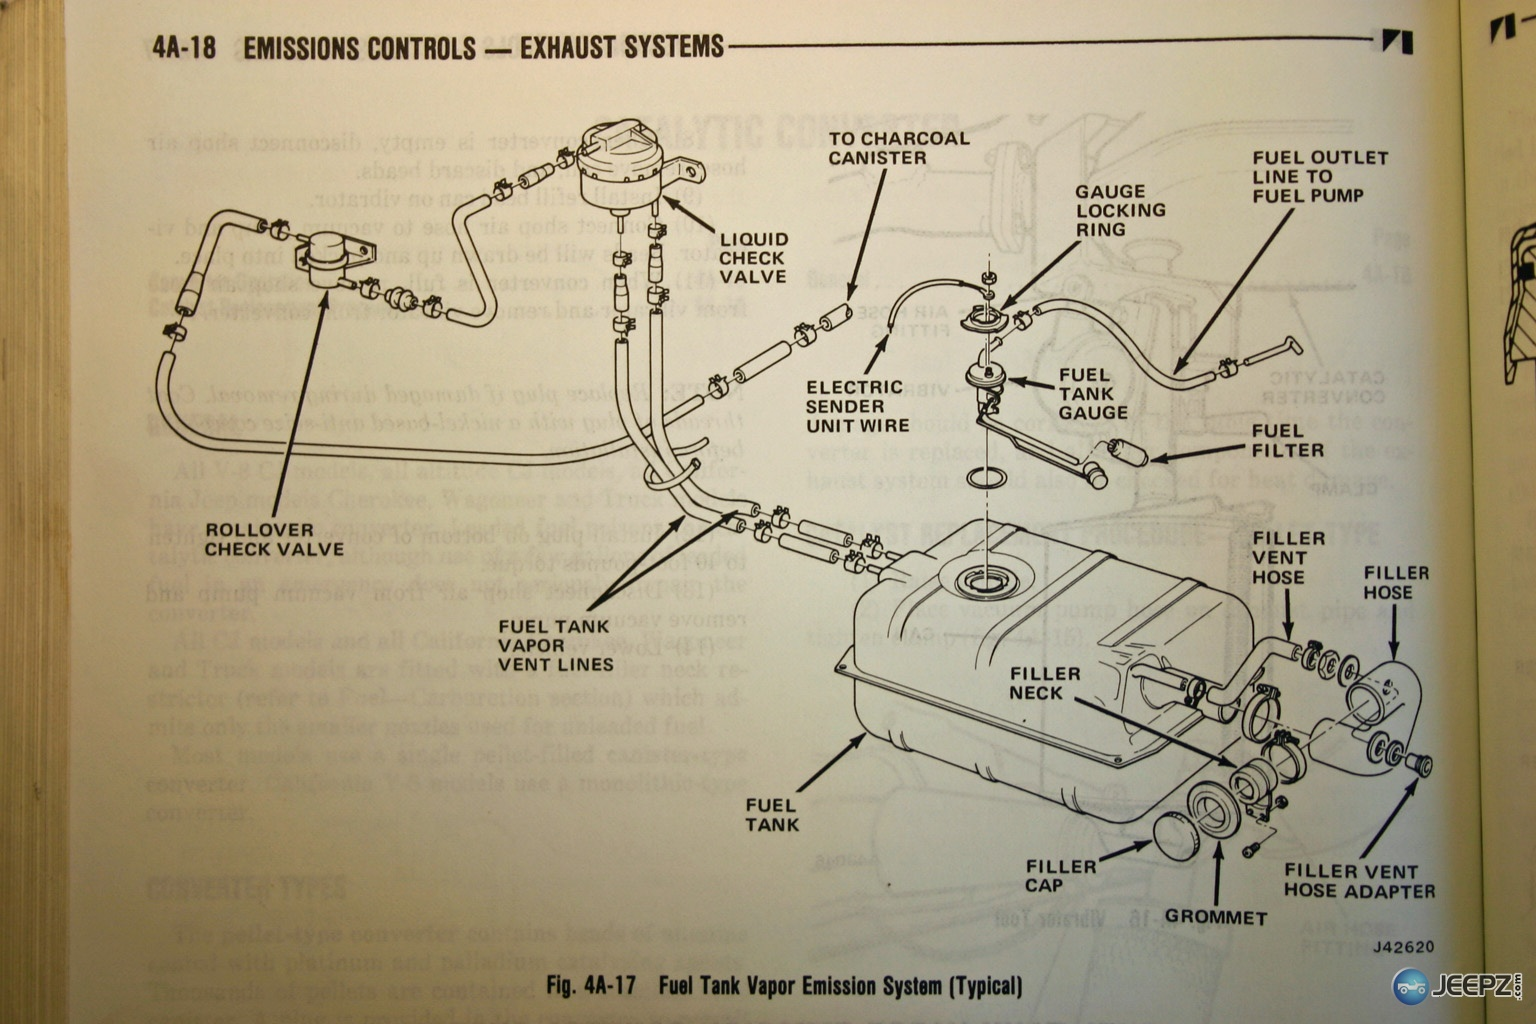 hight resolution of jeep tj fuel line diagram wiring diagram sch 2012 jeep wrangler fuel line diagram jeep wrangler fuel line diagrams